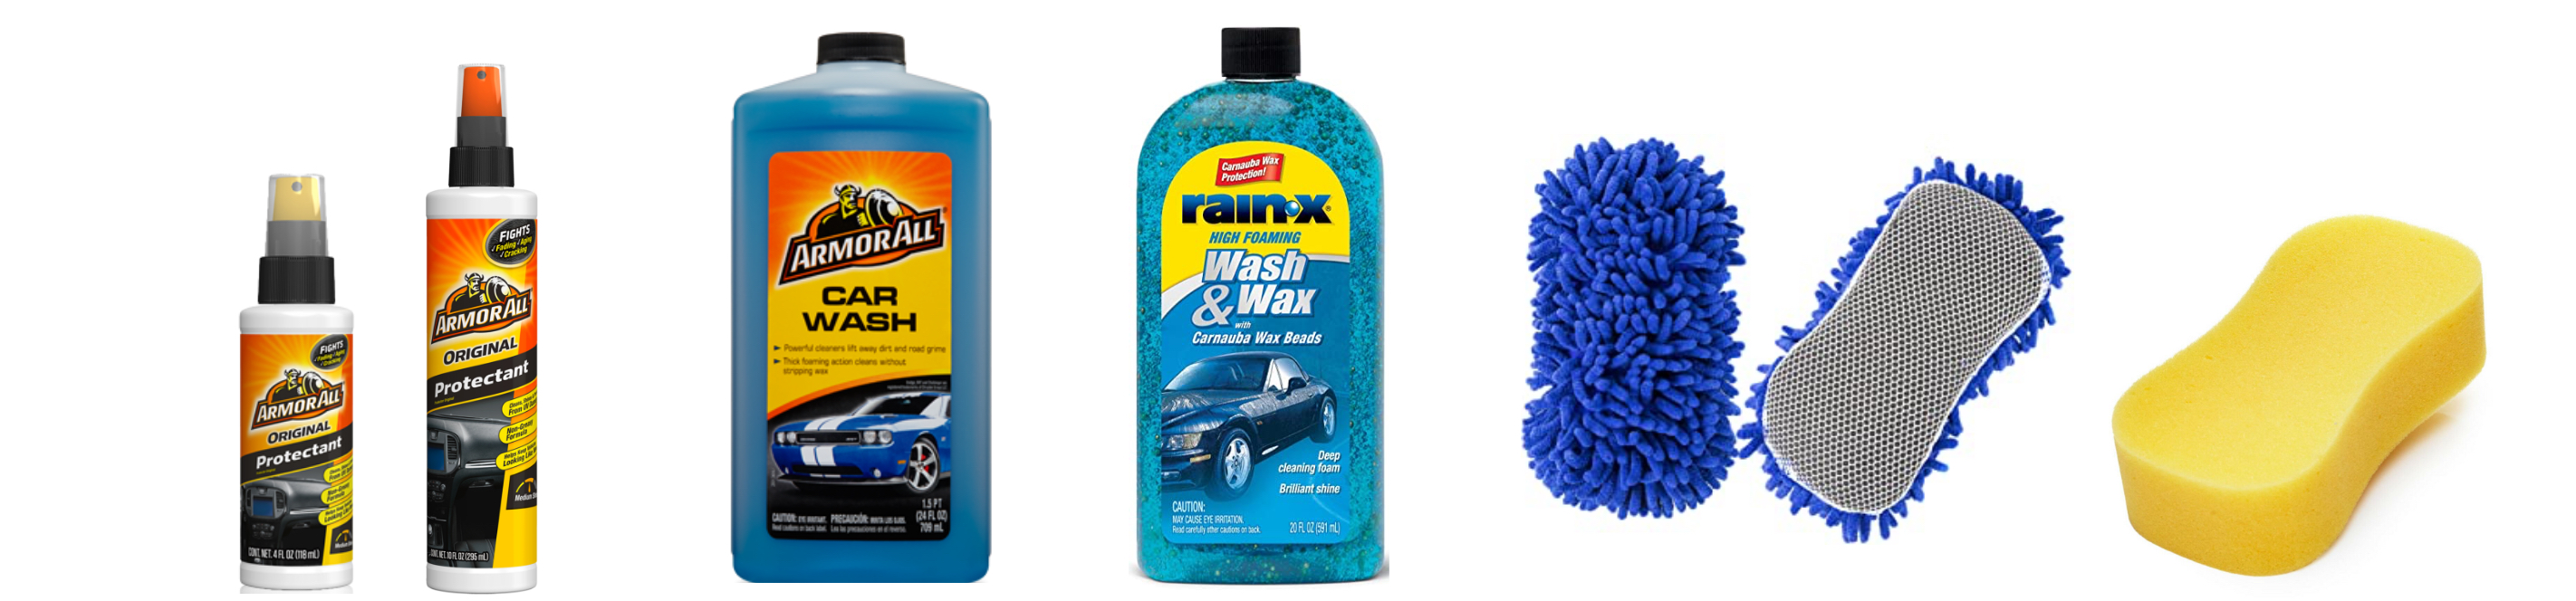 group of car care products, cleaners, protectants, sponge available in belize